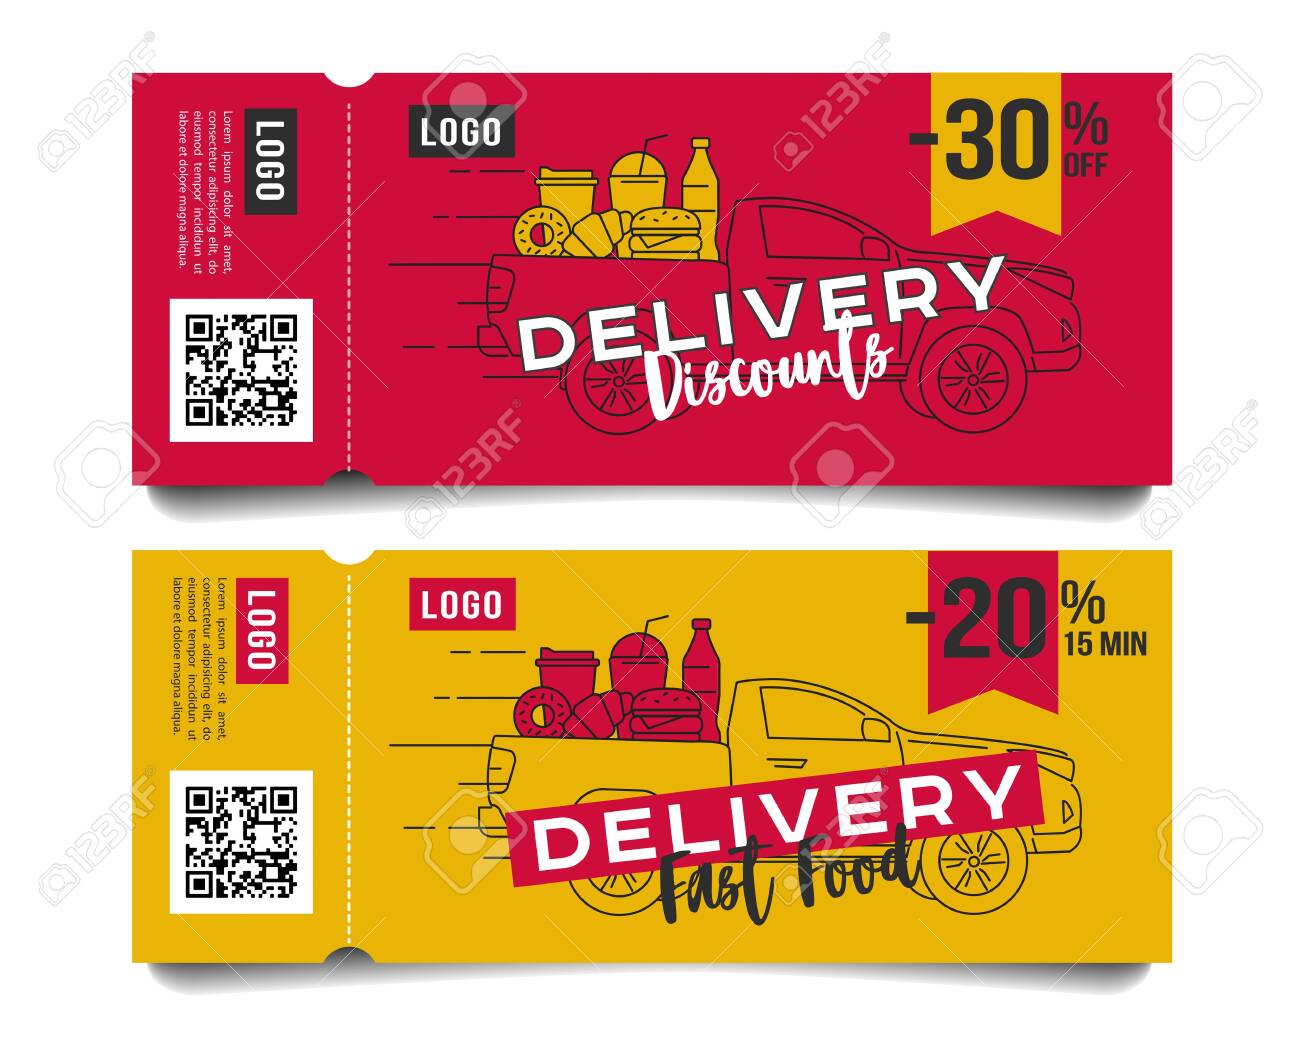 Discount voucher for fast food restaurant or delivery service, template design with truck car ful of food and drinks menu line illustration layout compisition - 143930827